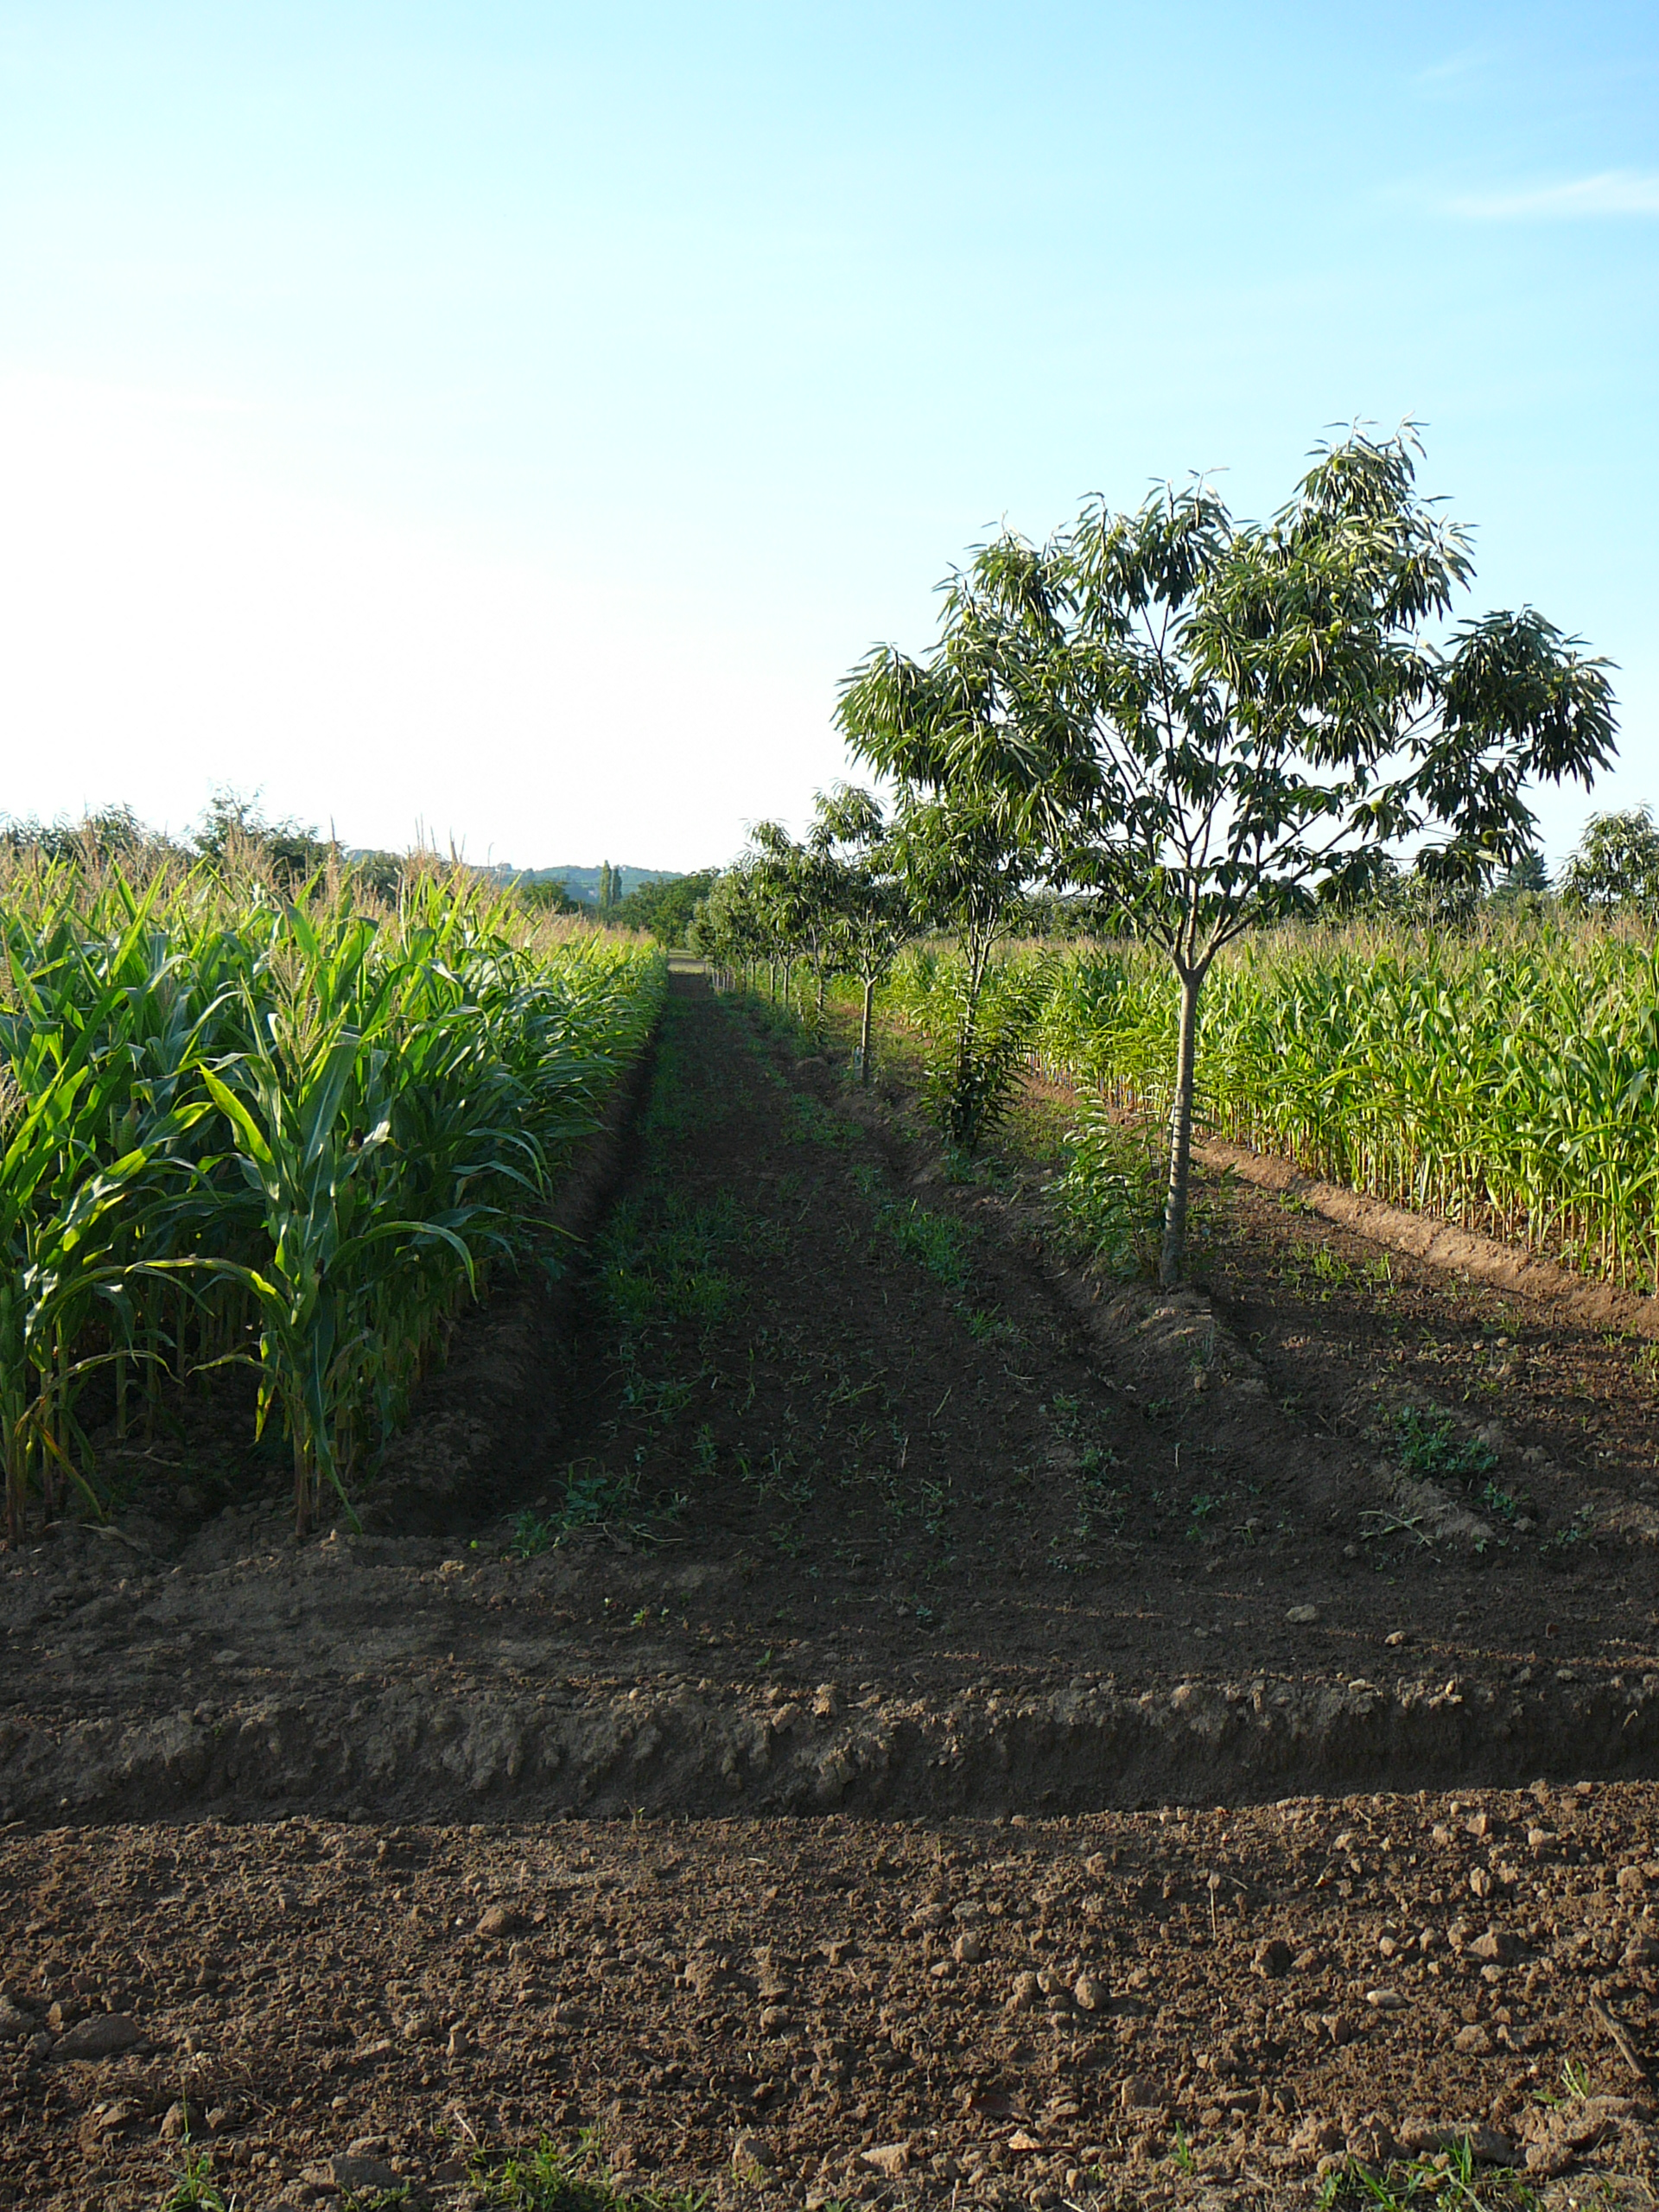 The most expensive was over $200 per acre. Agroforestry Wikipedia